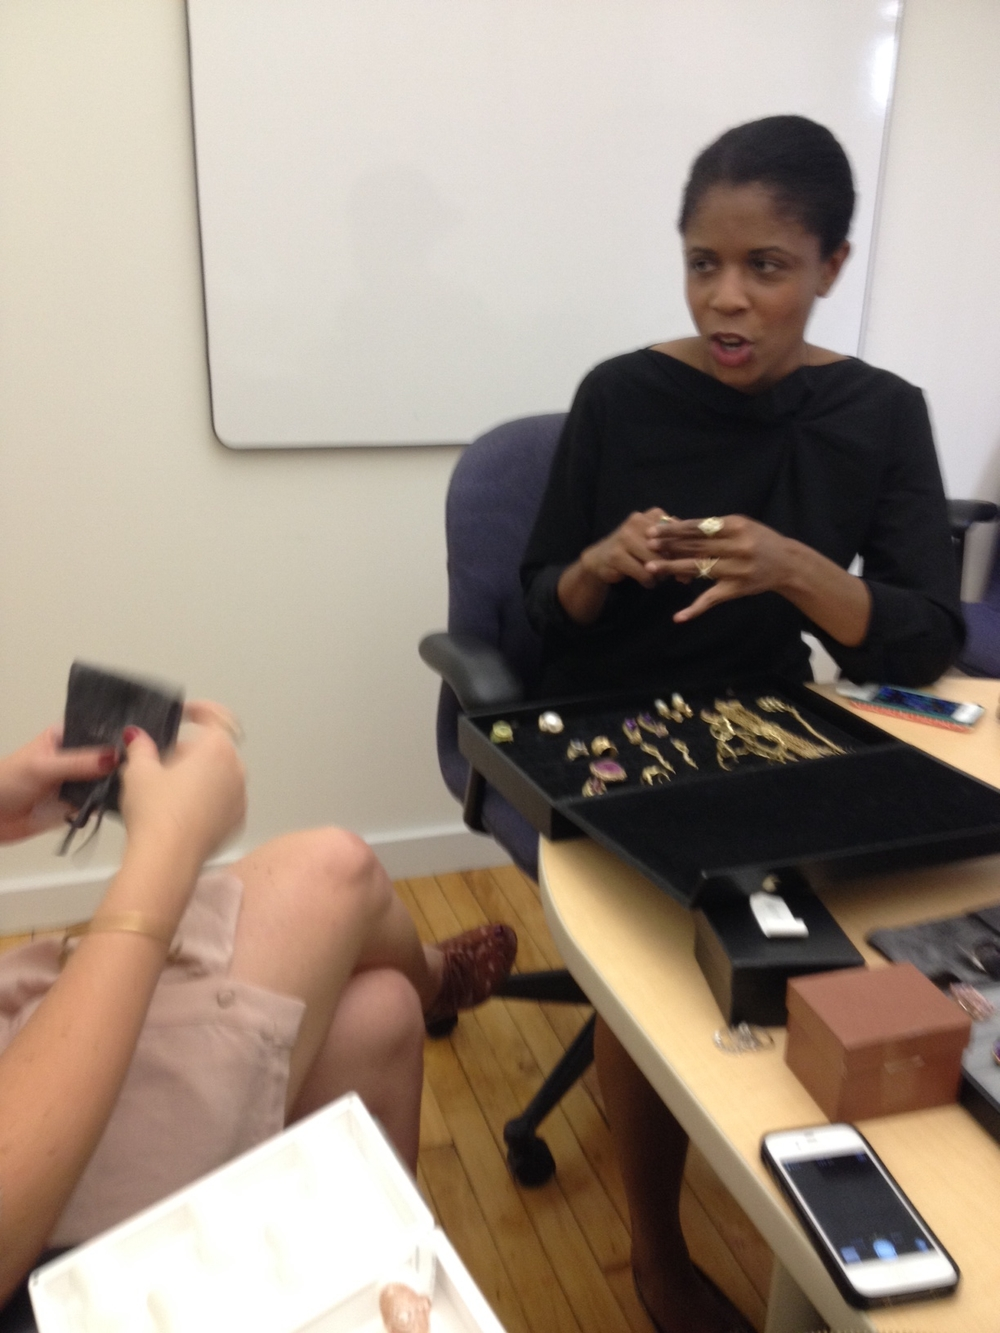 The glamourous, Tanya Dukes, senior jewelry editor of InStore and InDesign, discussing her favorite jewelry designs.